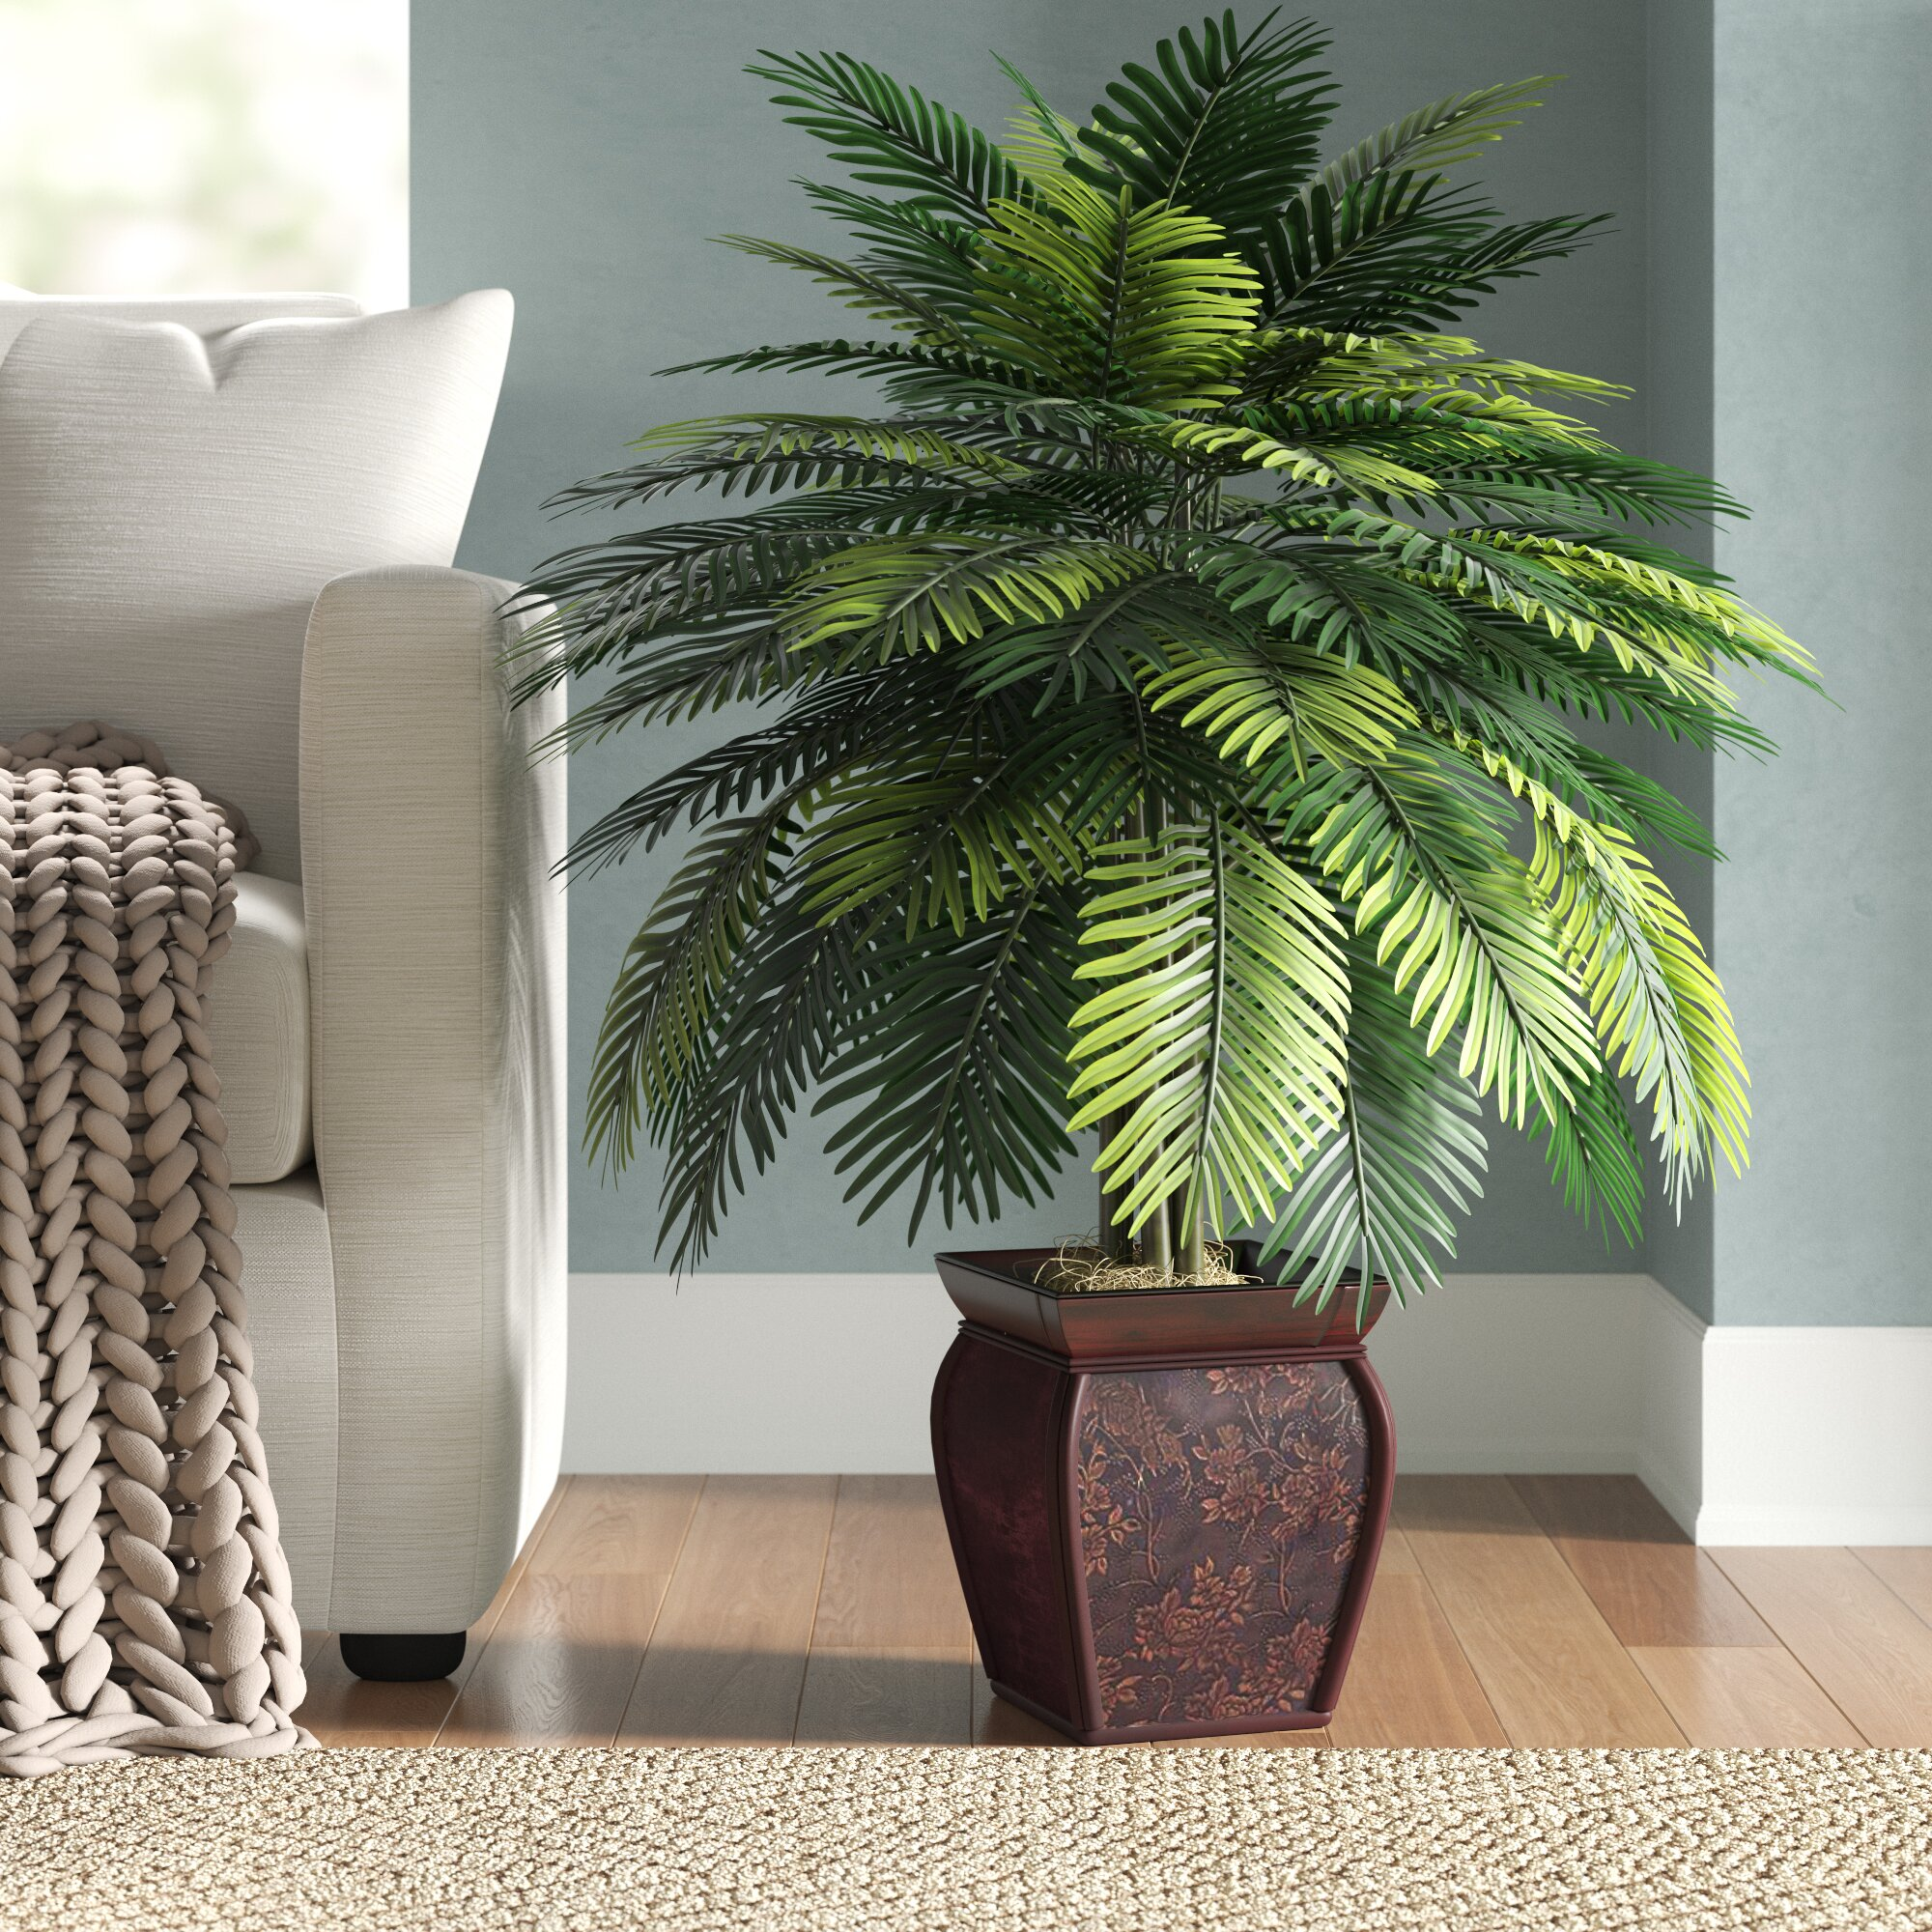 Surround the Sofa with Plants